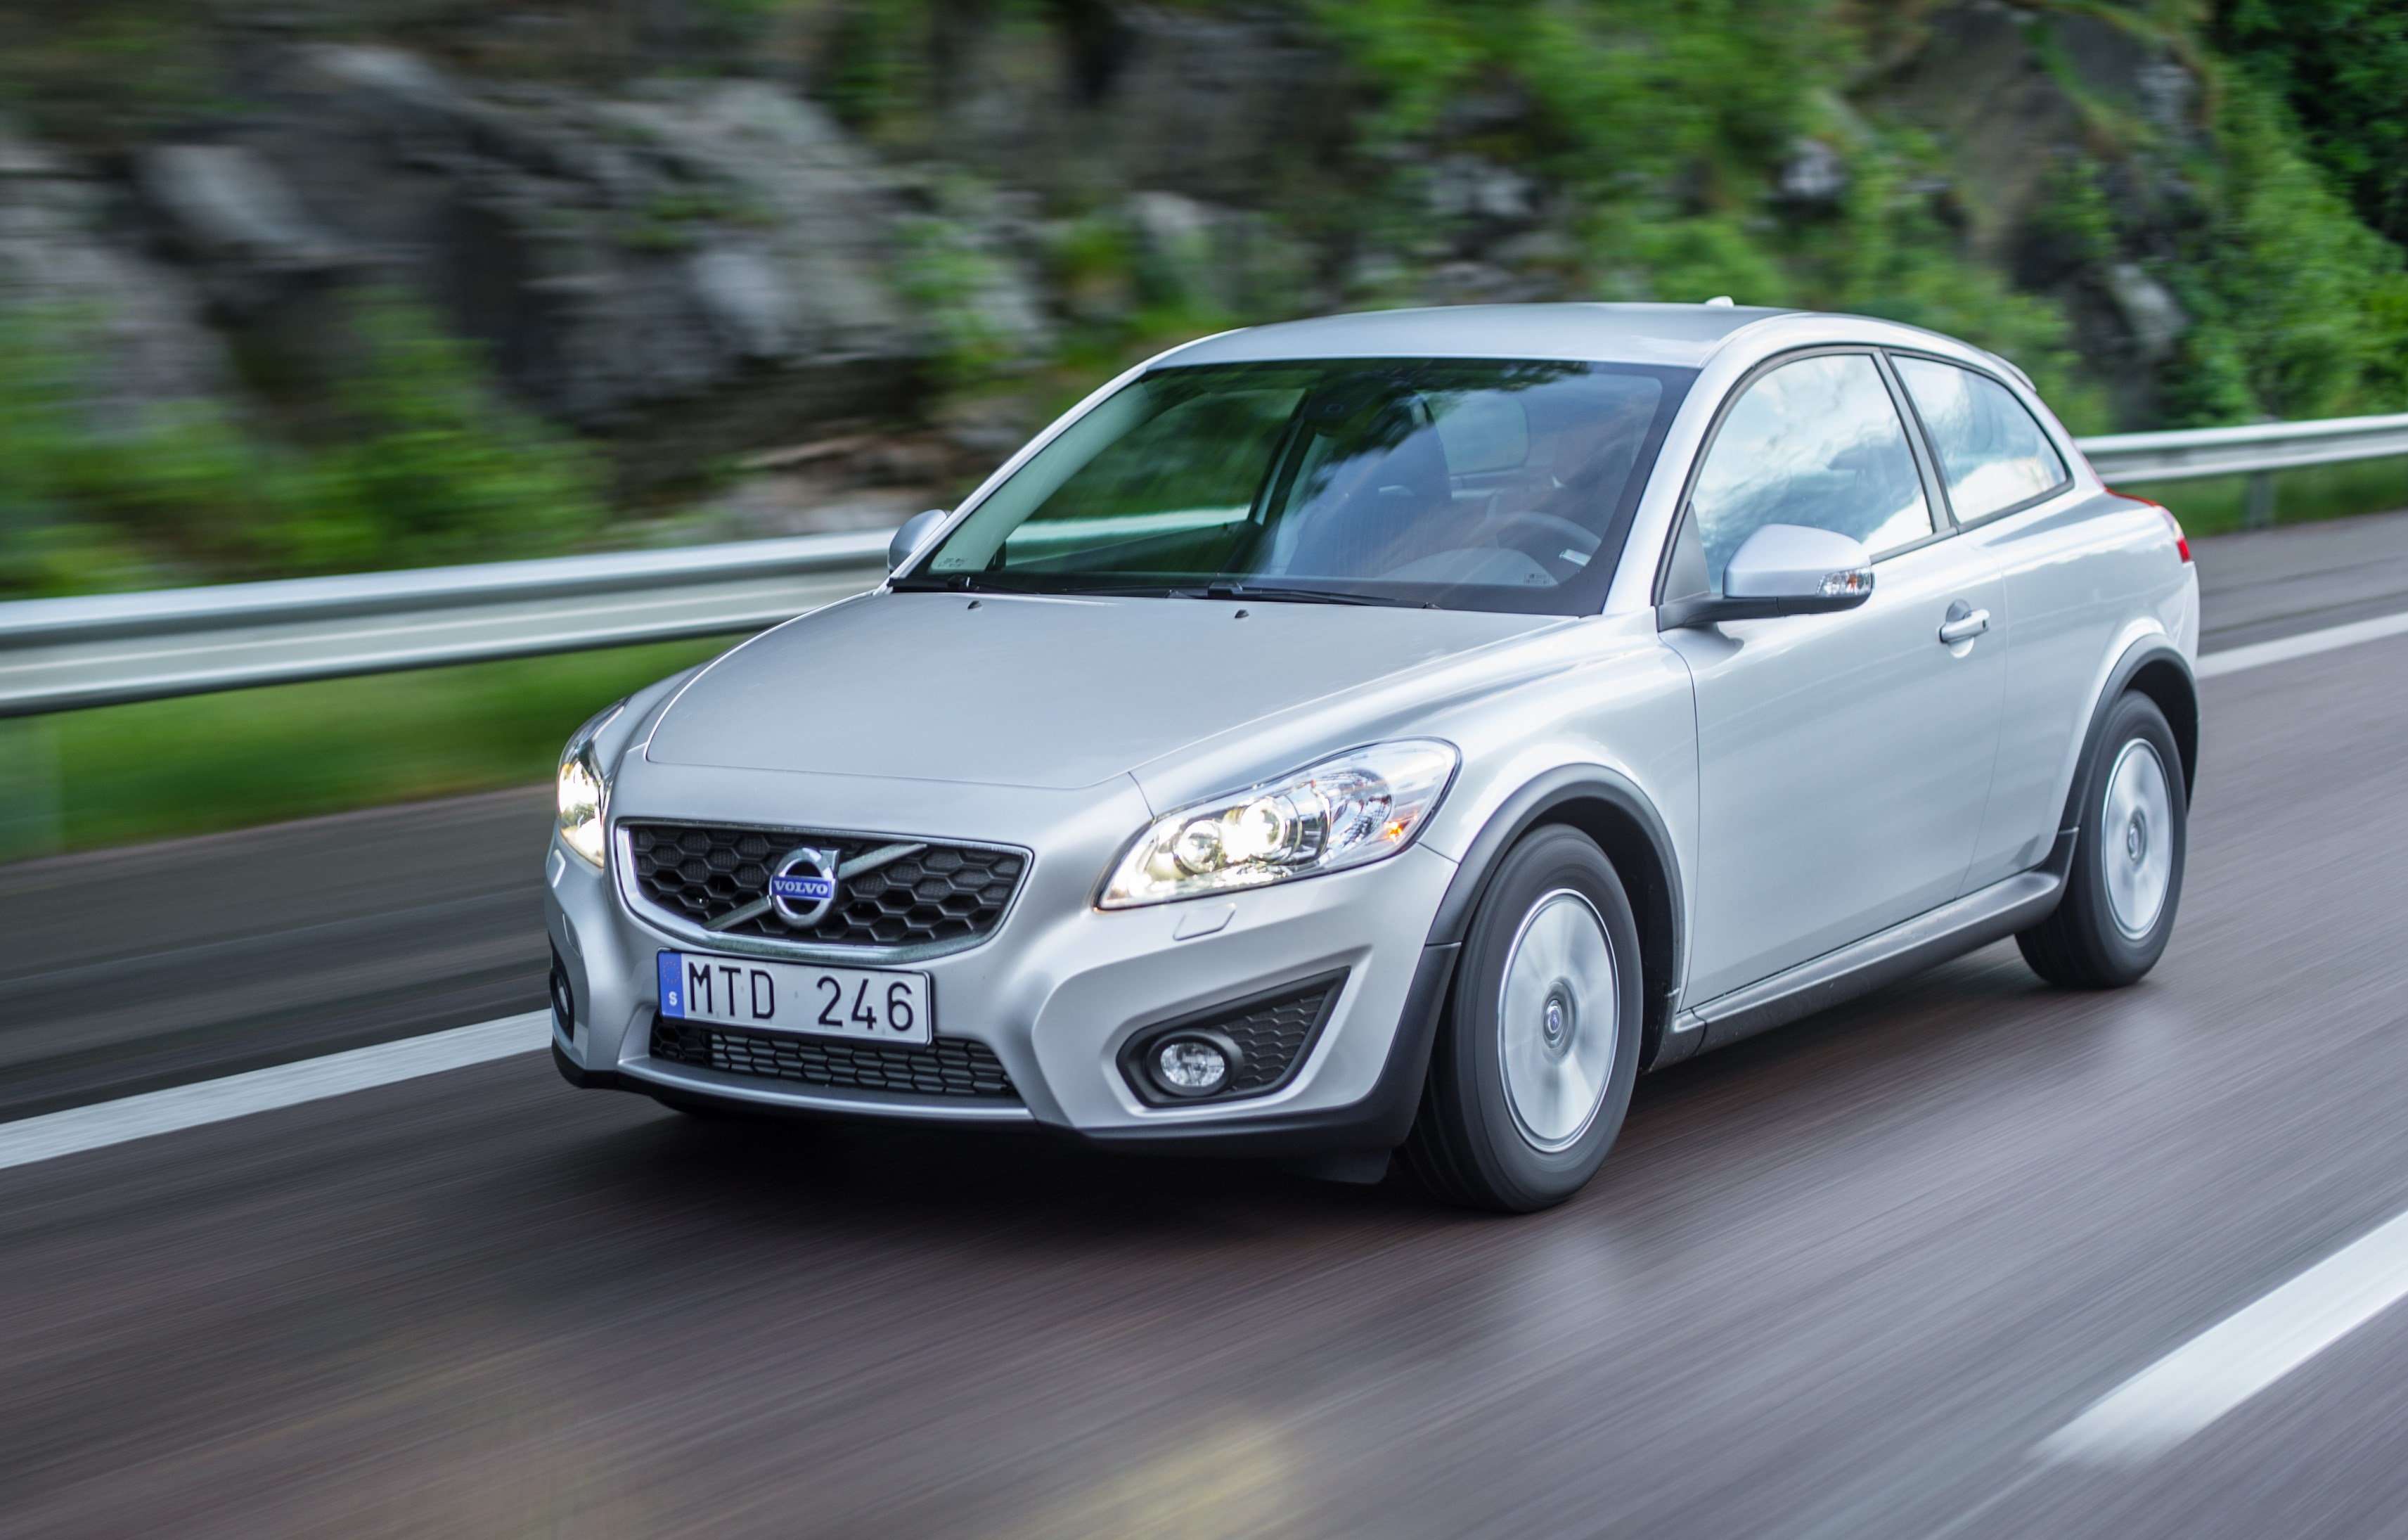 2012-volvo-c30 Great Description About Volvo C30 R Design with Interesting Gallery Cars Review